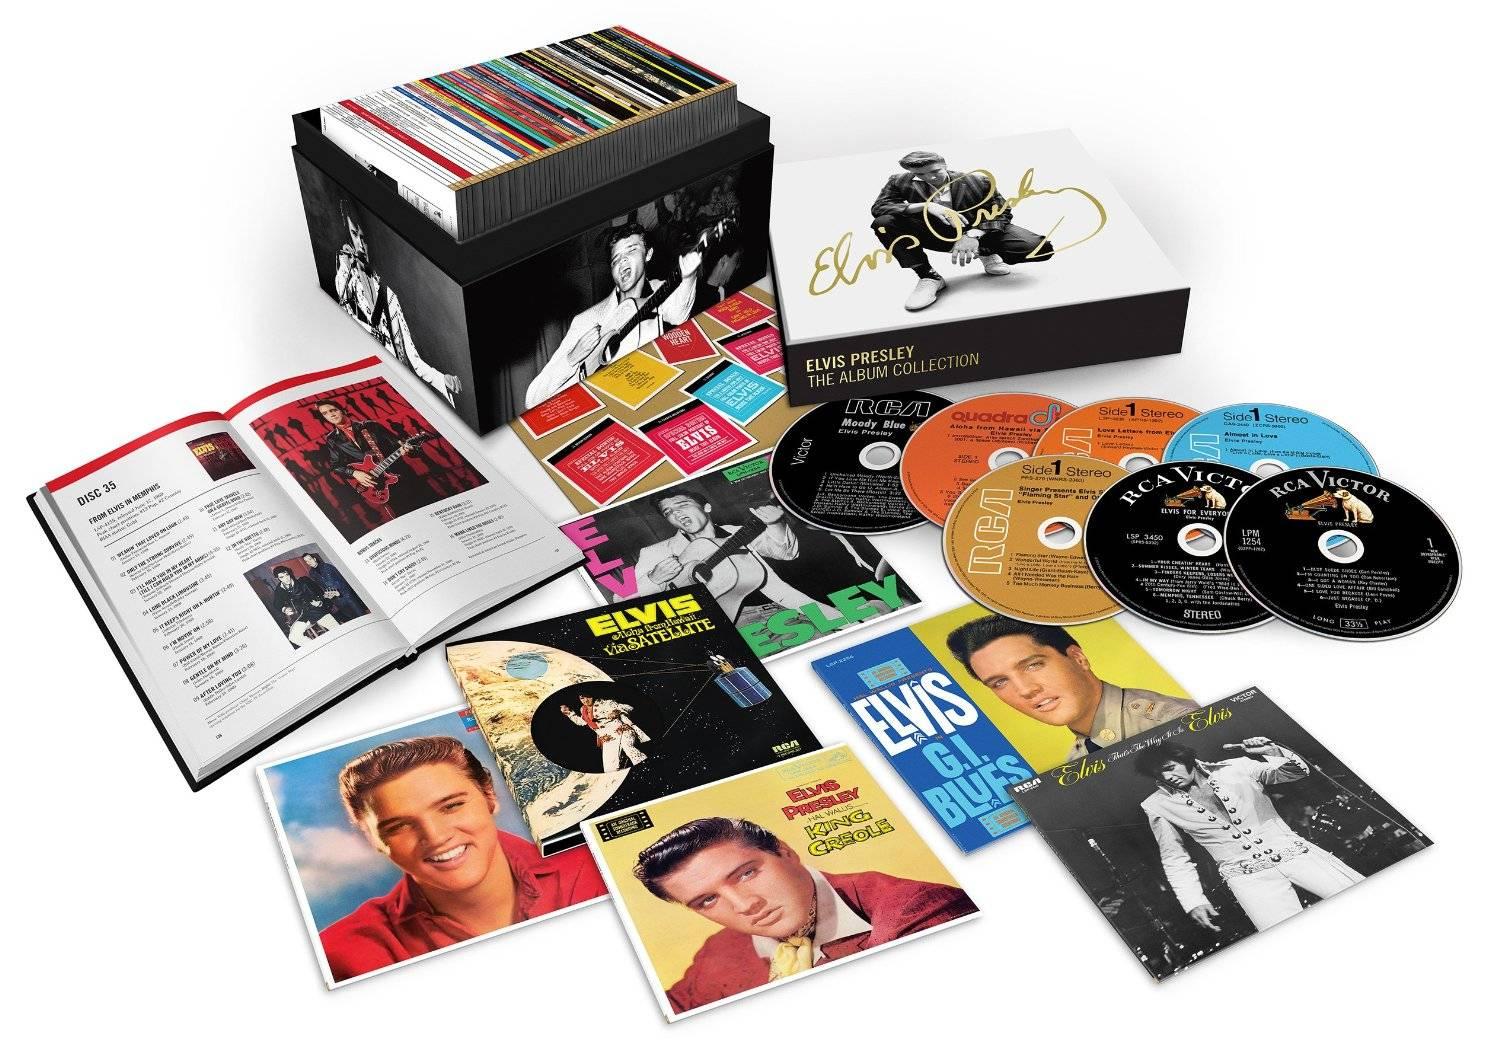 Elvis Presley - The RCA Albums Collection: Box Set 60CDs (2016) Re-up